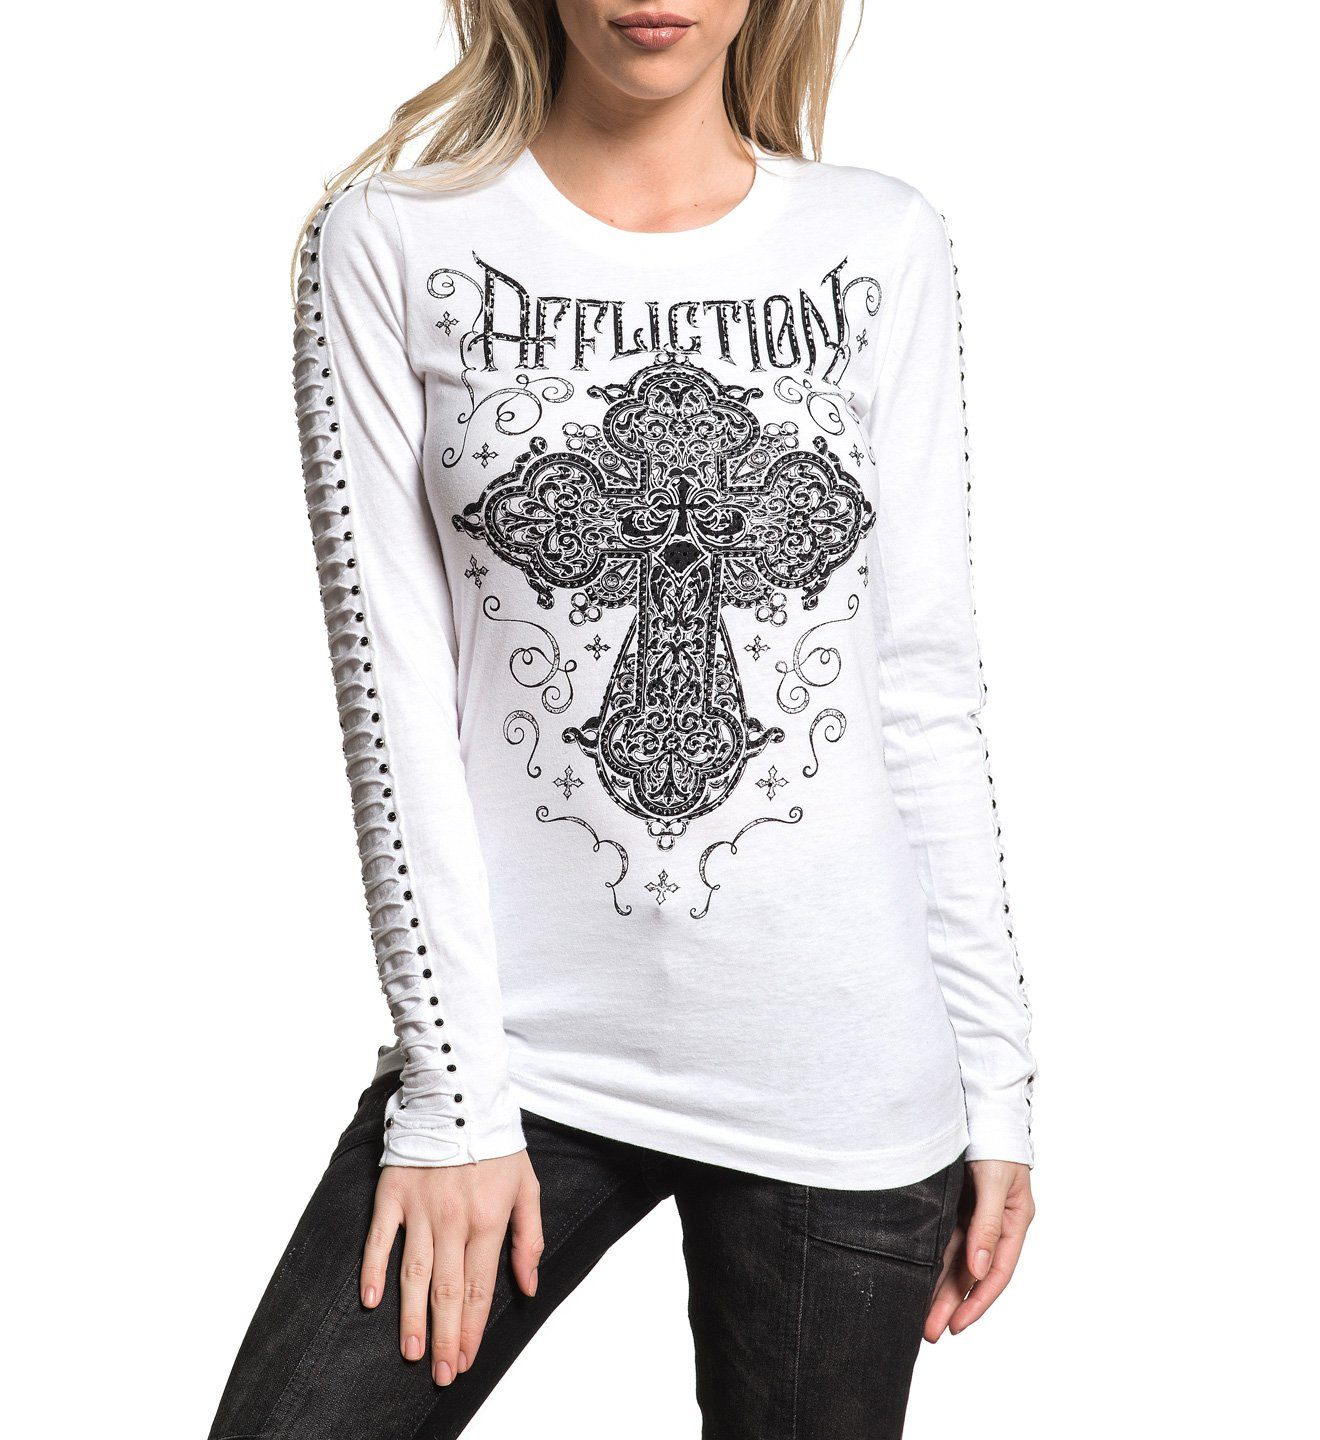 Womens Long Sleeve Tees - Eastwood Blossom